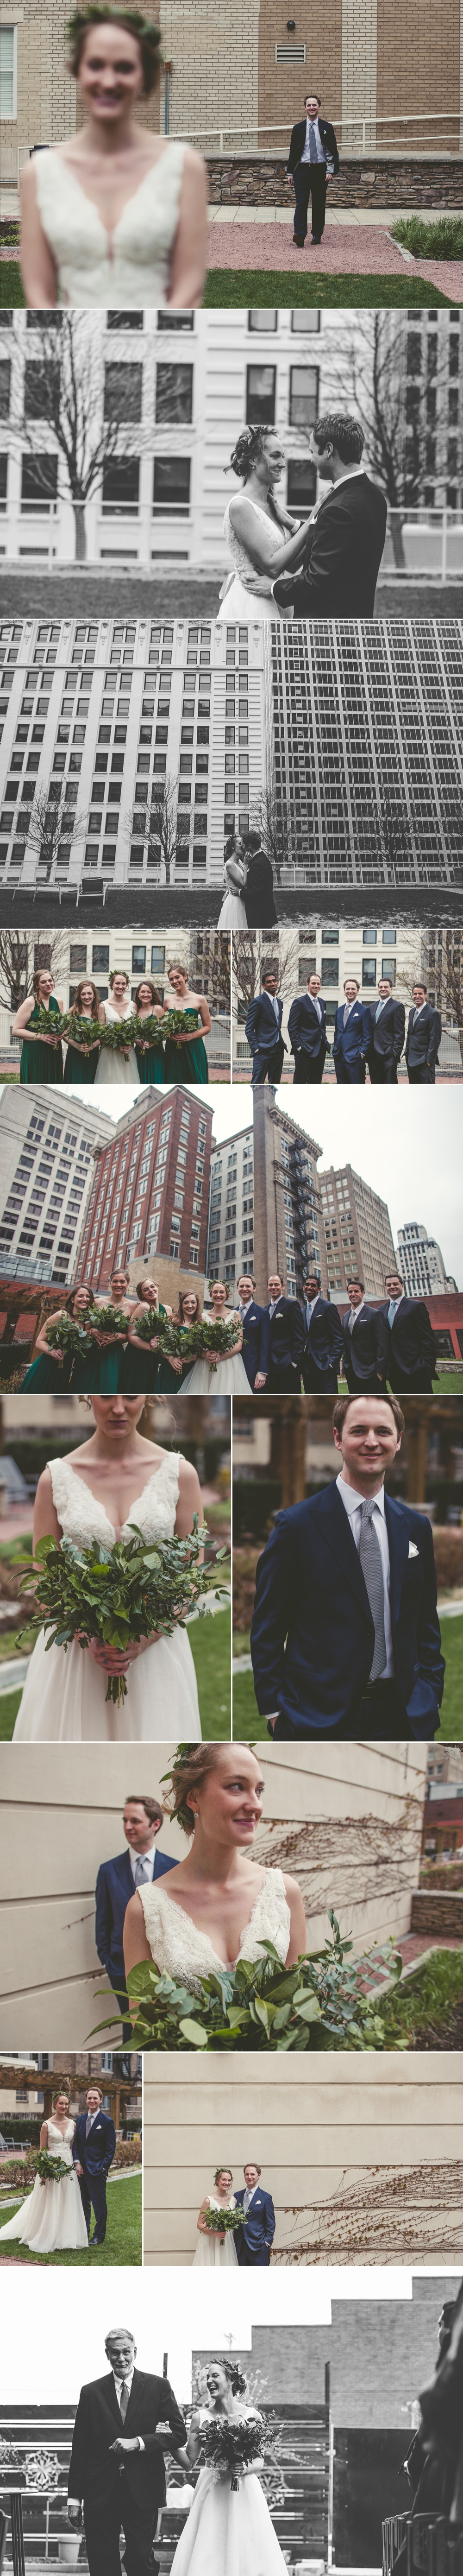 mae_chris_hobbs_building_feasts_of_fancy_0002_jason_domingues_photography_best_kansas_city_photographer_kc_weddings_.jpg